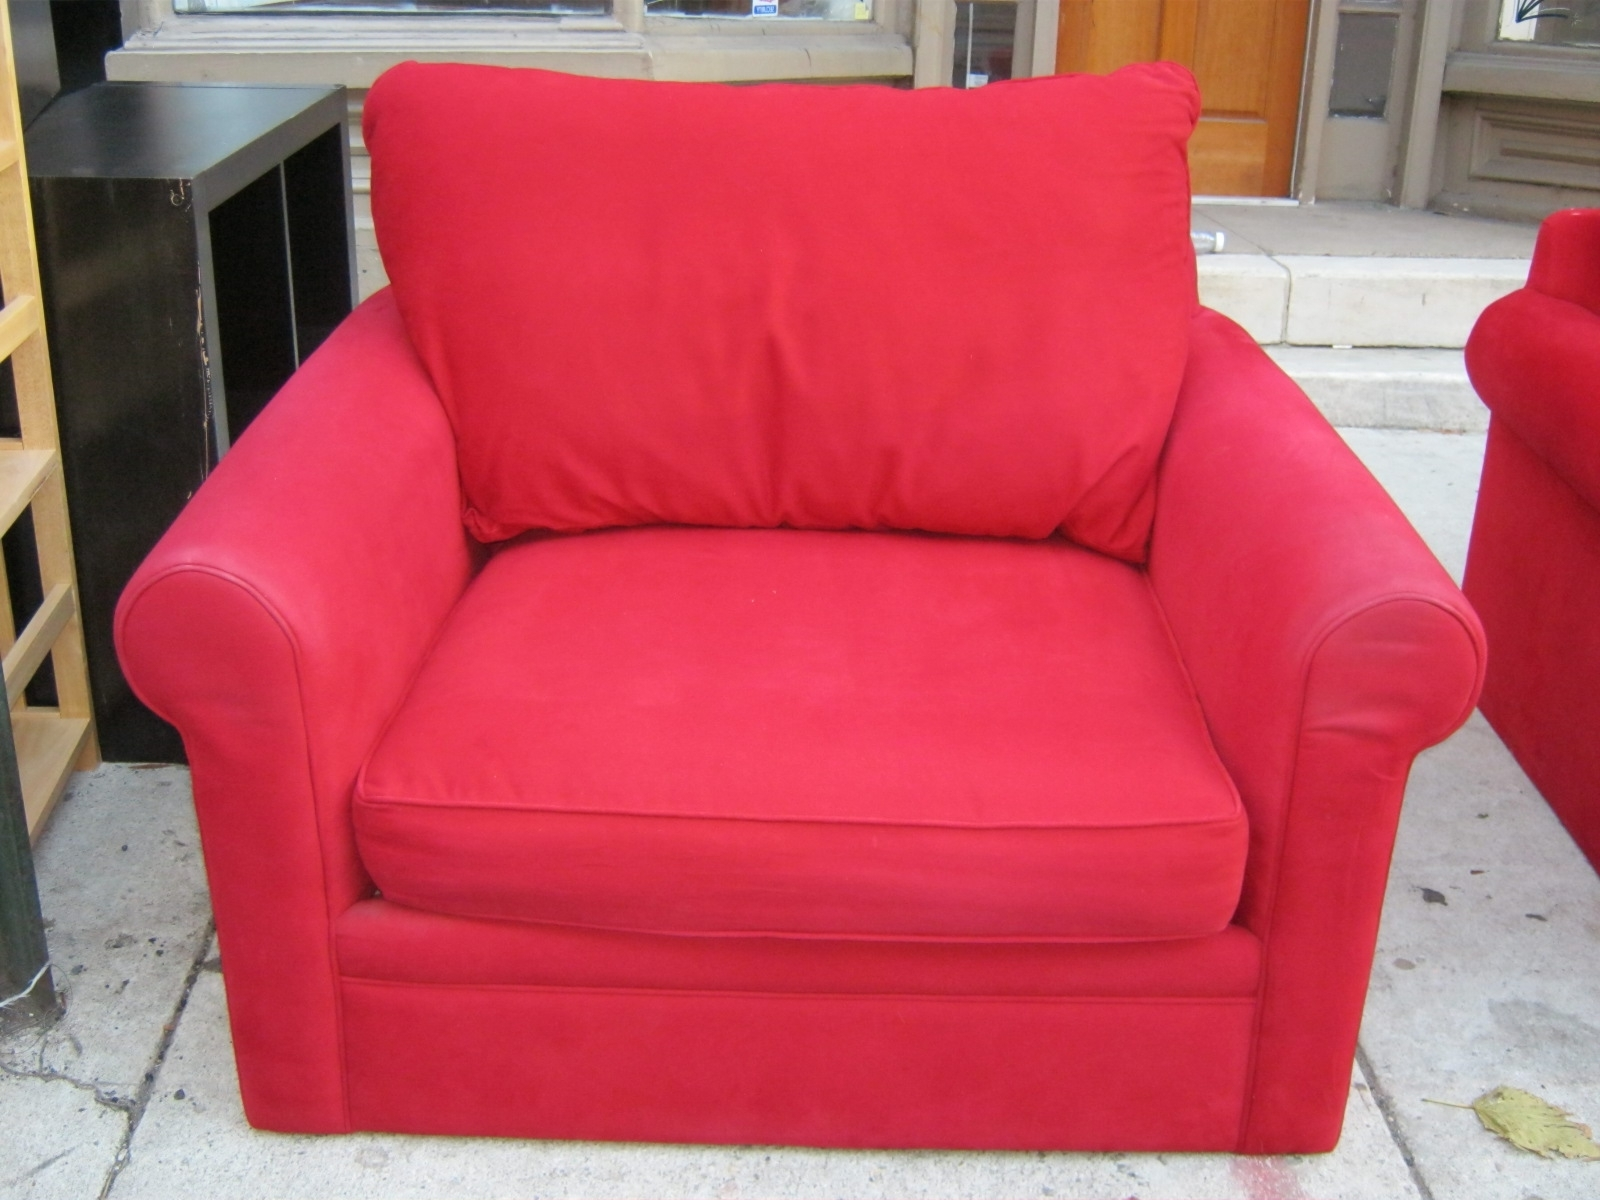 2019 Red Sofa Chairs Regarding Uhuru Furniture & Collectibles: Red Sofa Chair And Ottoman Set Sold (View 9 of 20)